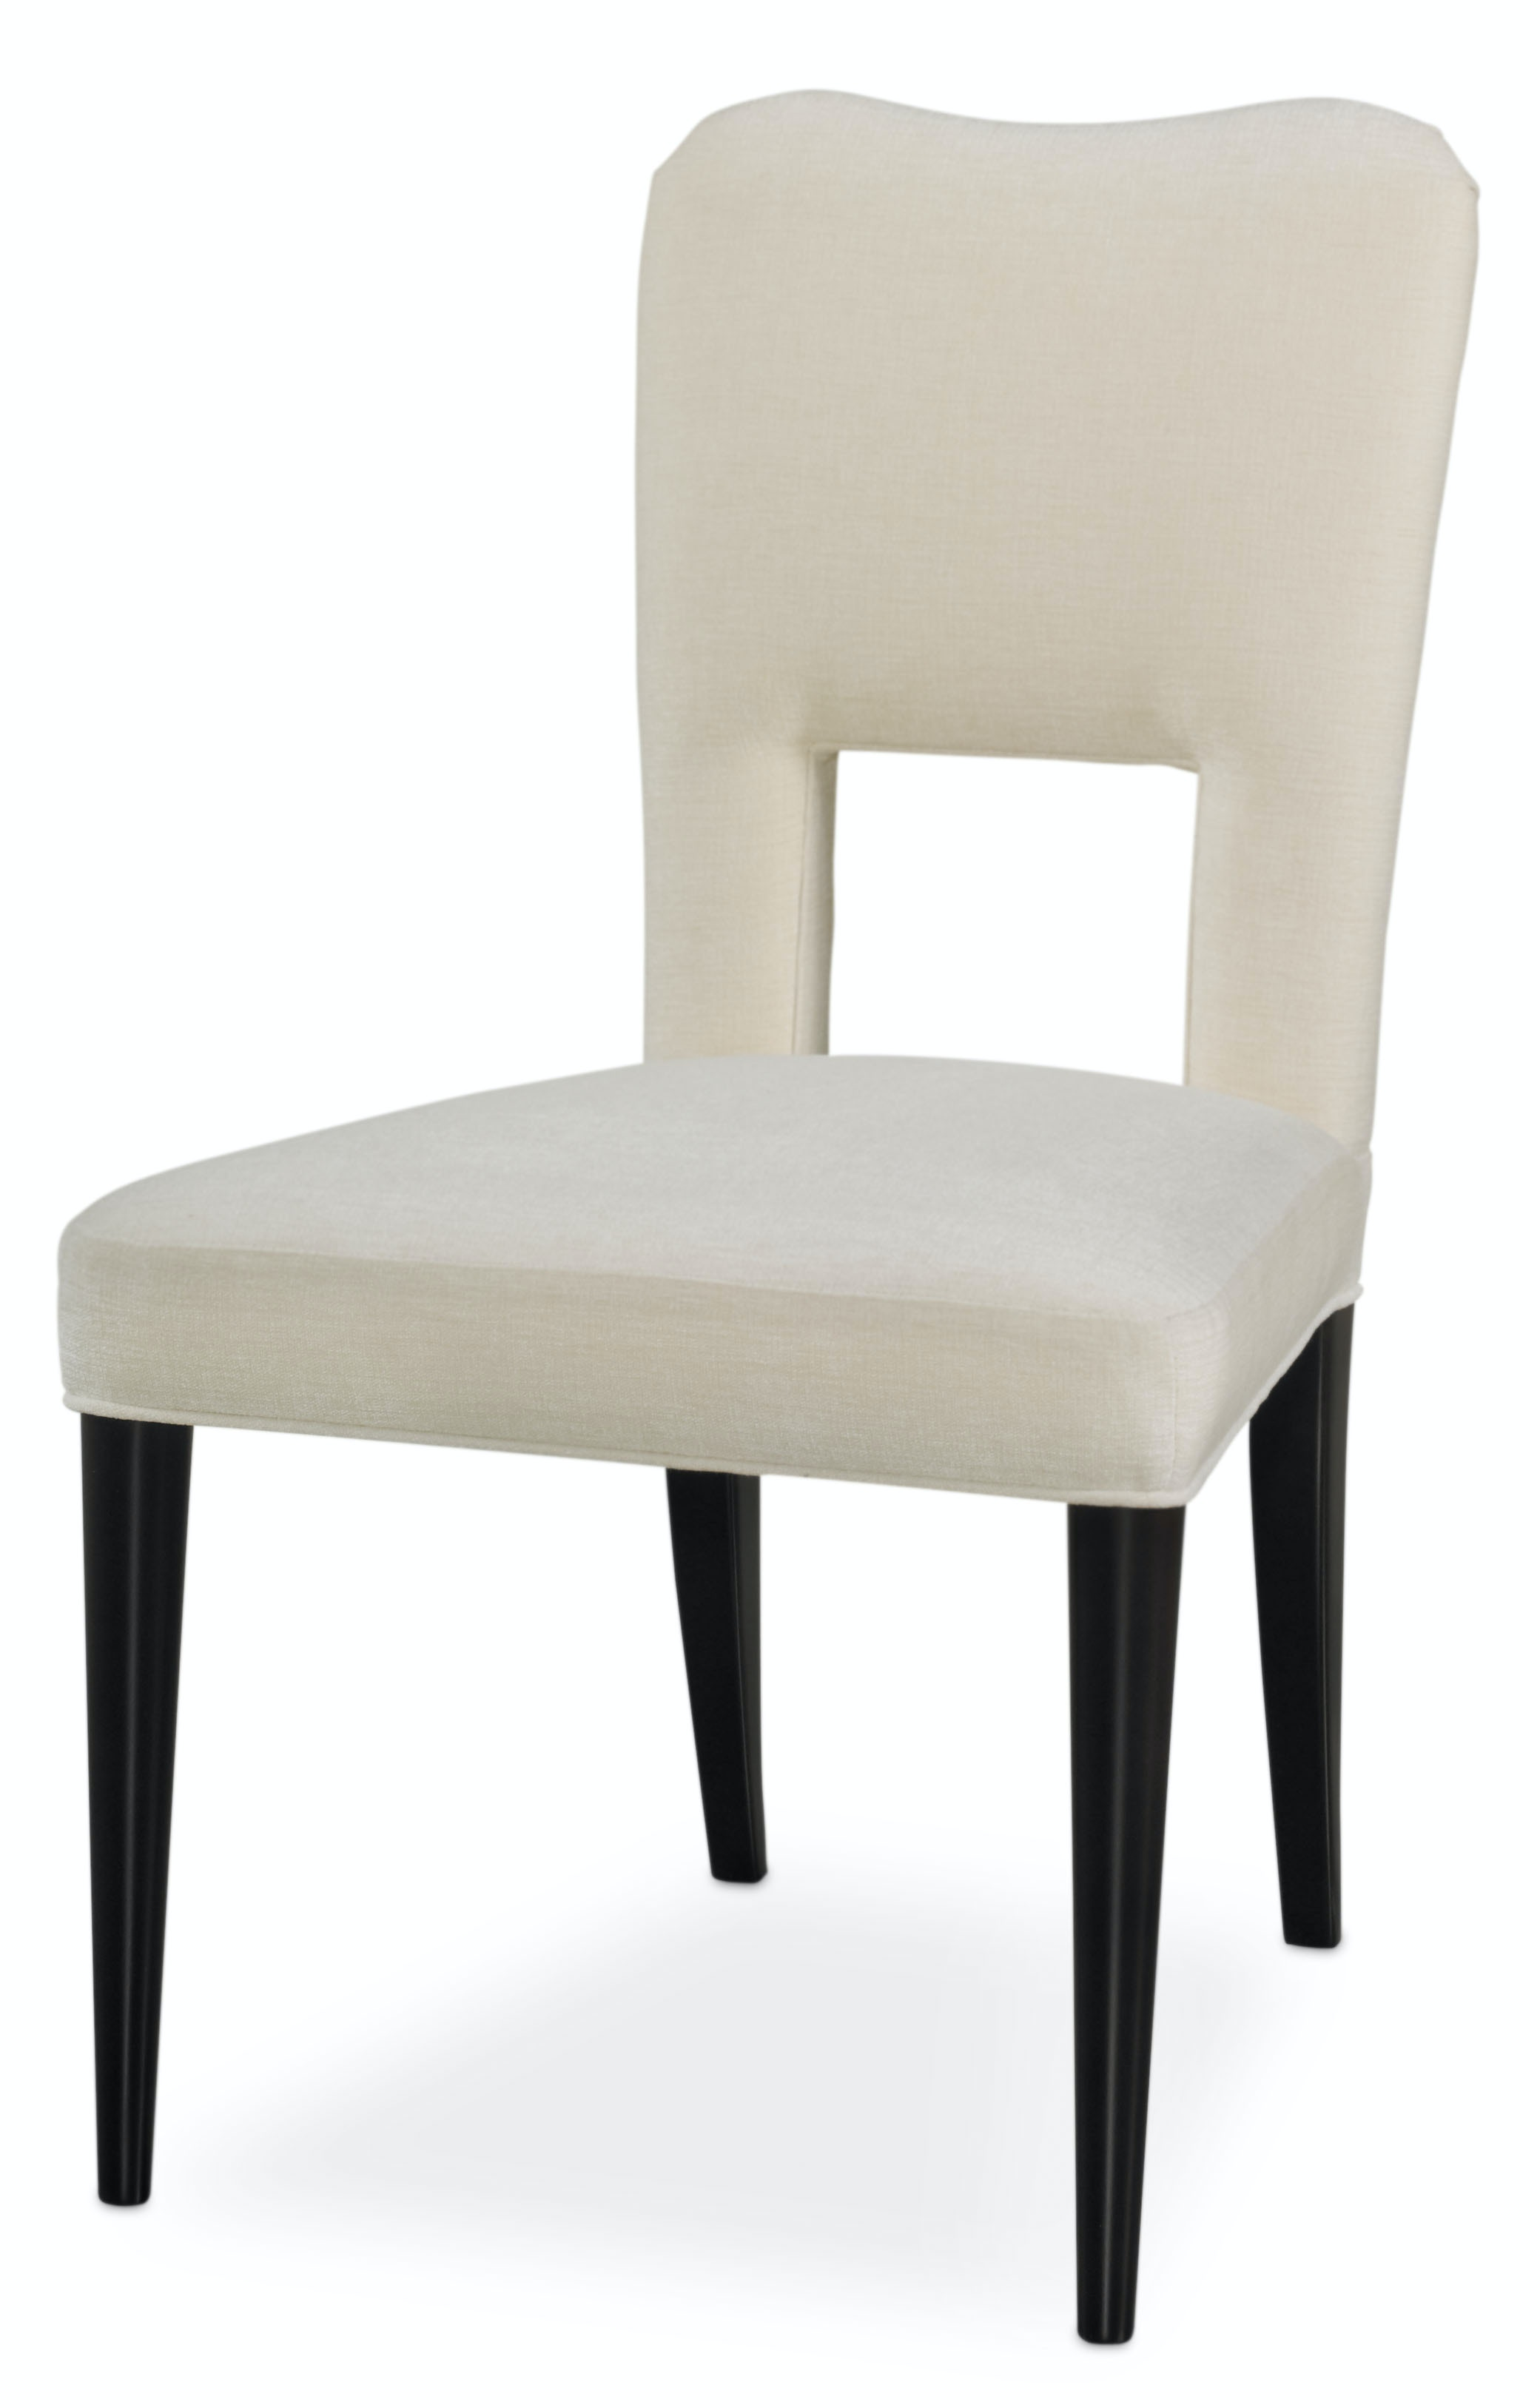 Swaim Chay KF206 DC21 Dining Chair  sc 1 st  Luxury Living By Noel Furniture & Swaim Dining Room Chay KF206 DC21 Dining Chair - Noel Furniture ...